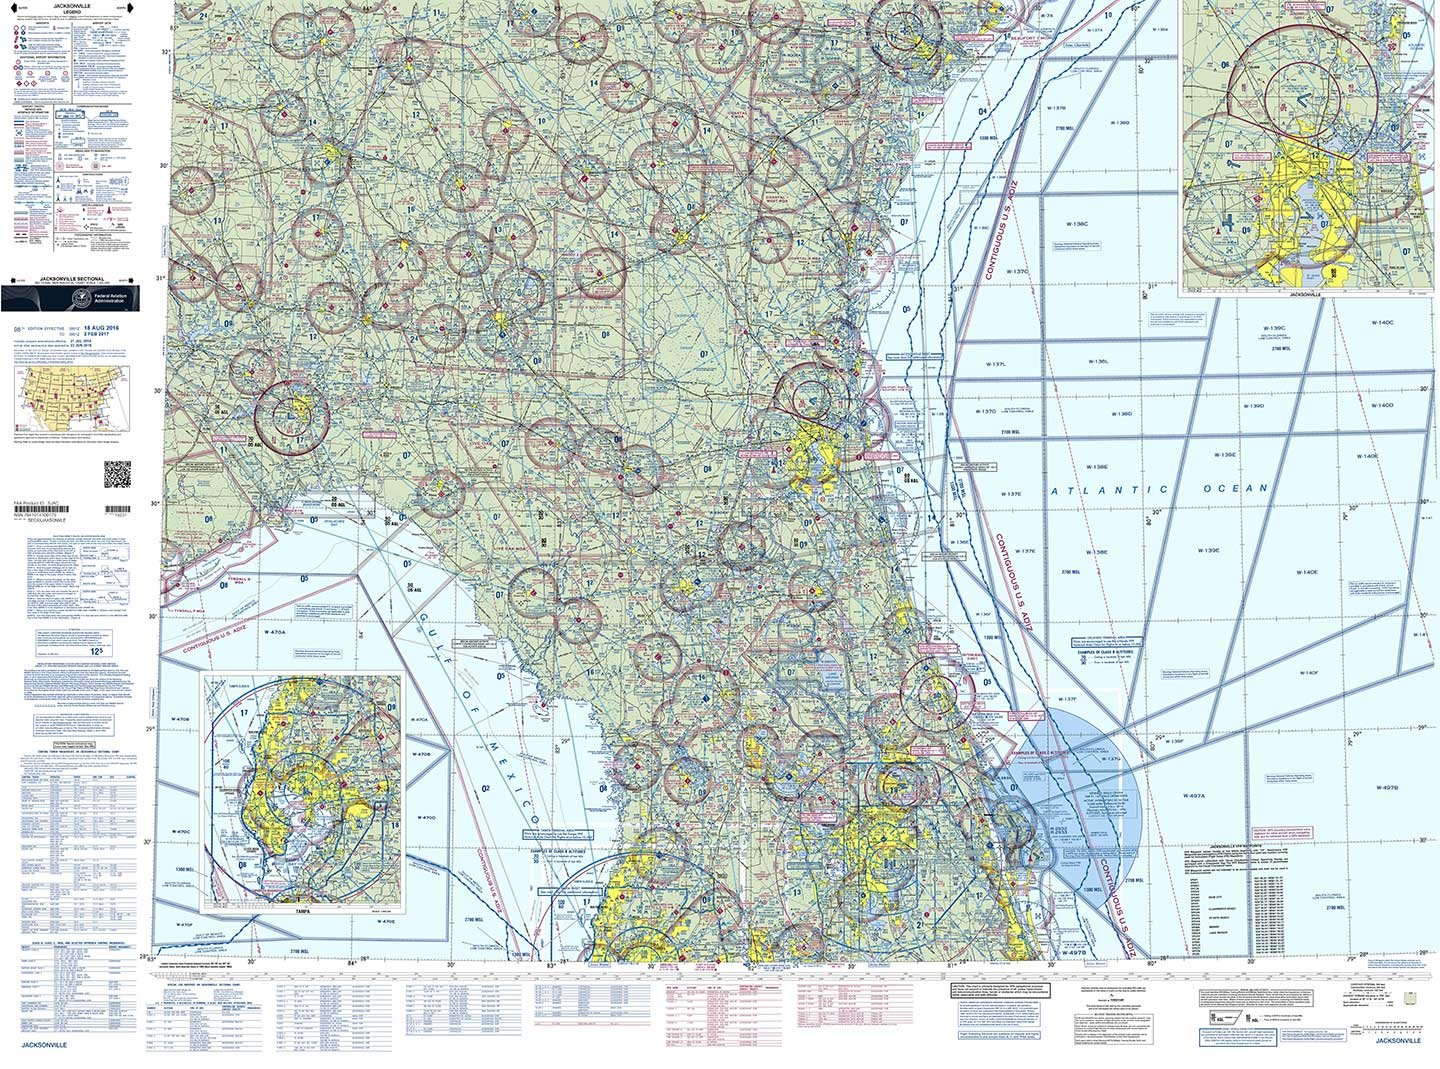 cb133edcf04 Amazon.com  FAA Chart  VFR Sectional JACKSONVILLE SJAC (Current Edition)   GPS   Navigation